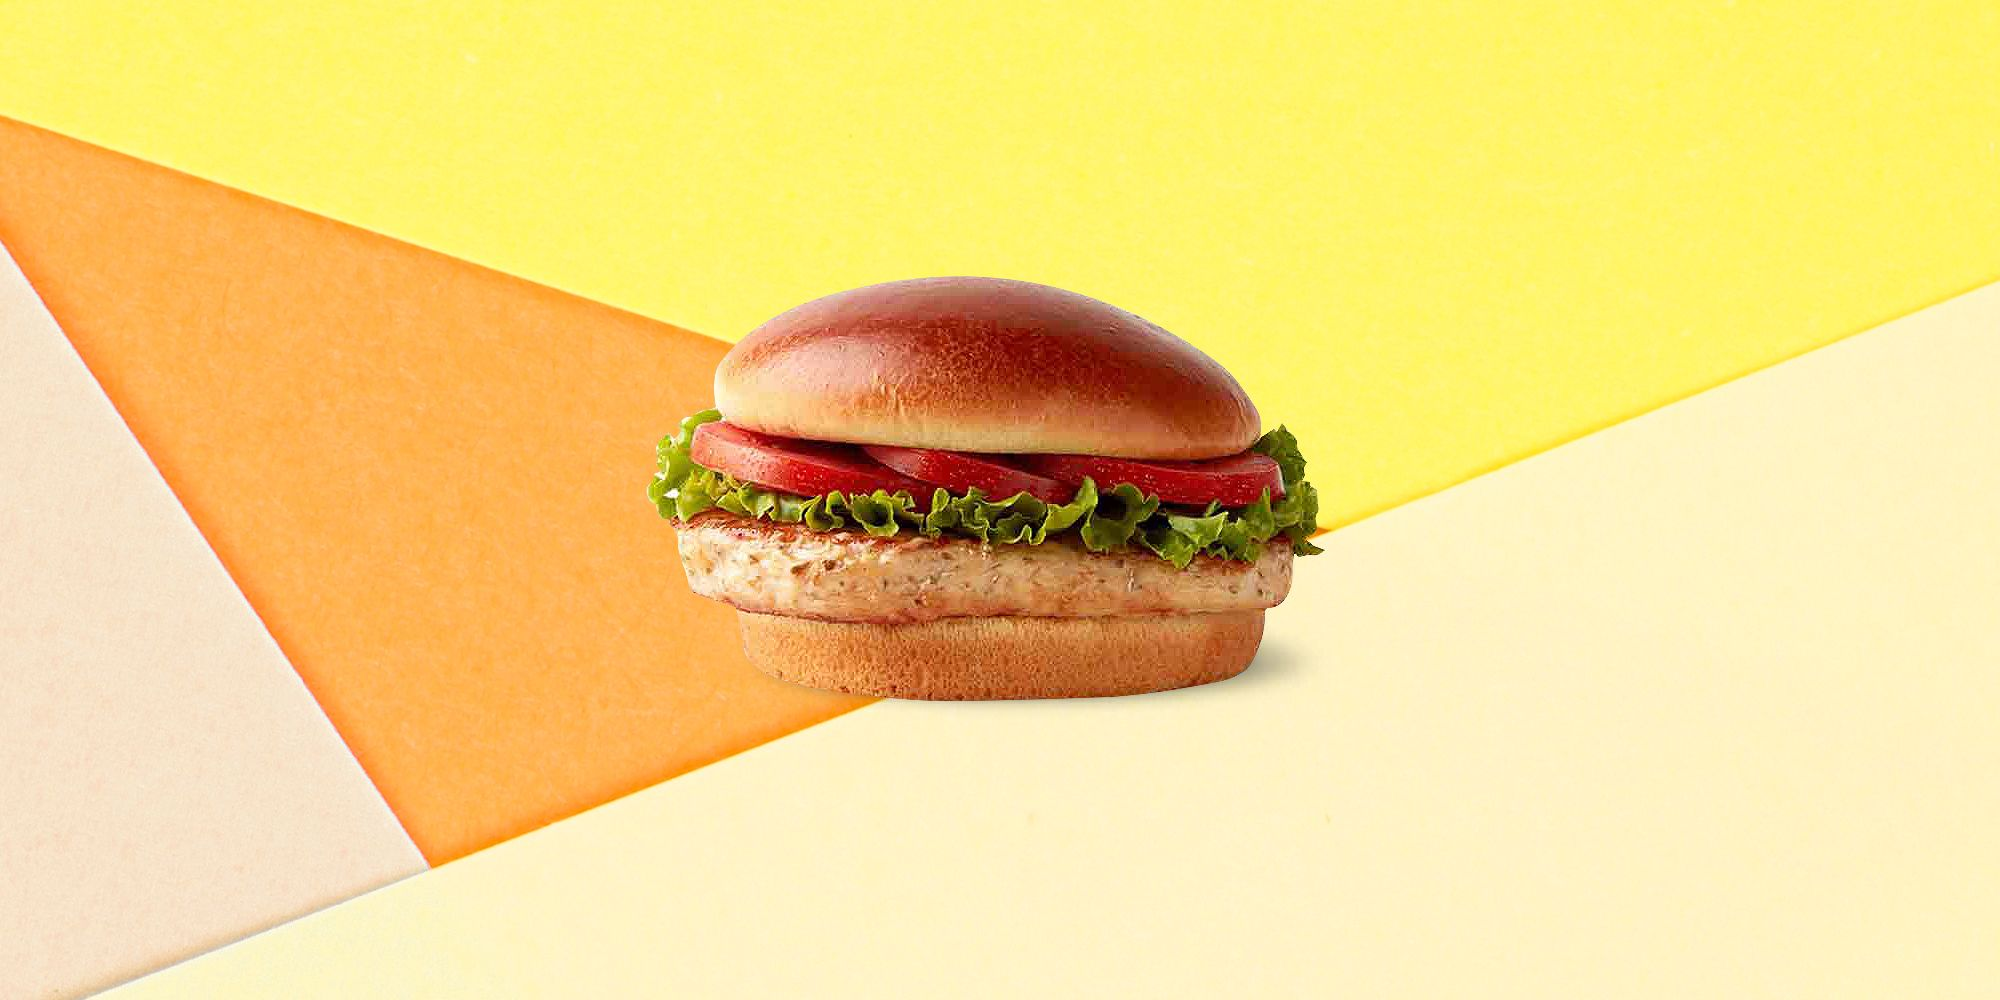 15 High-Protein Fast-Food Orders Nutritionists Recommend